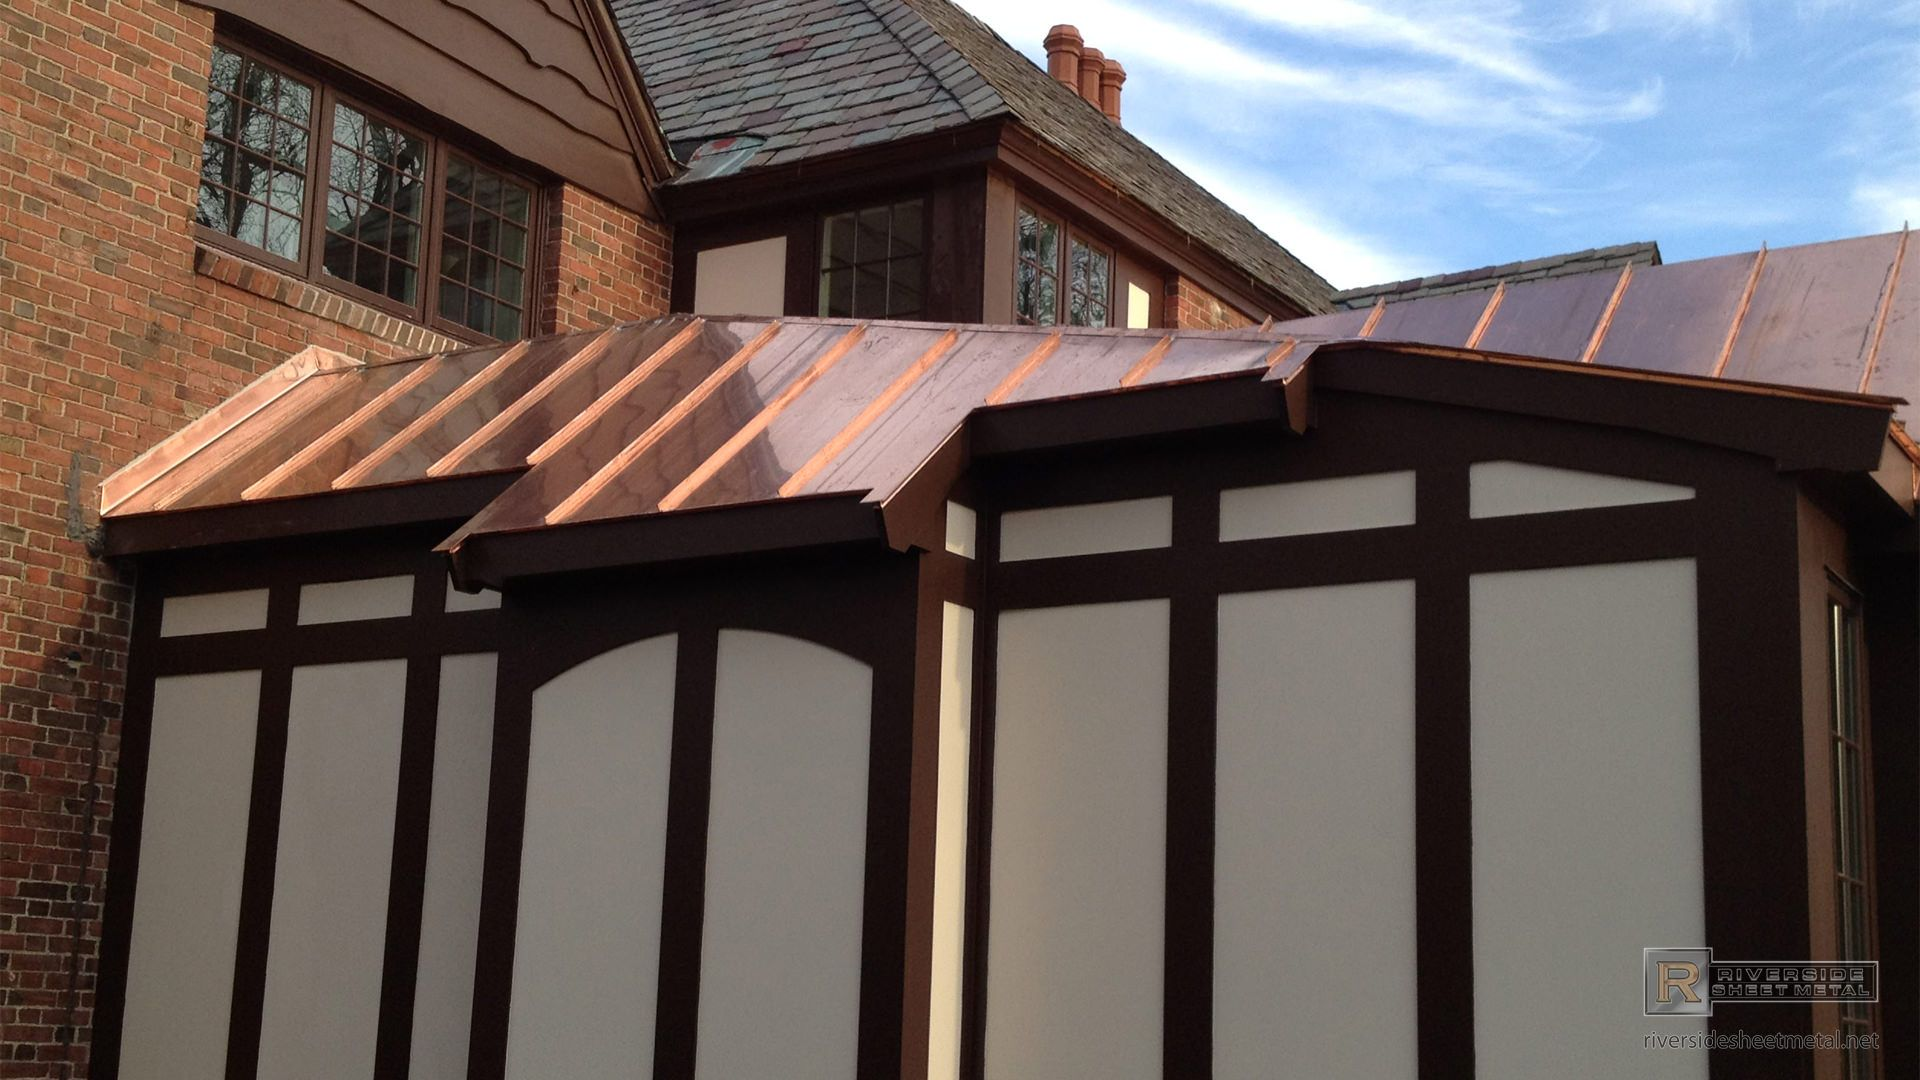 Standing Seam Copper Roof Copper Roof Metal Roof Roofing